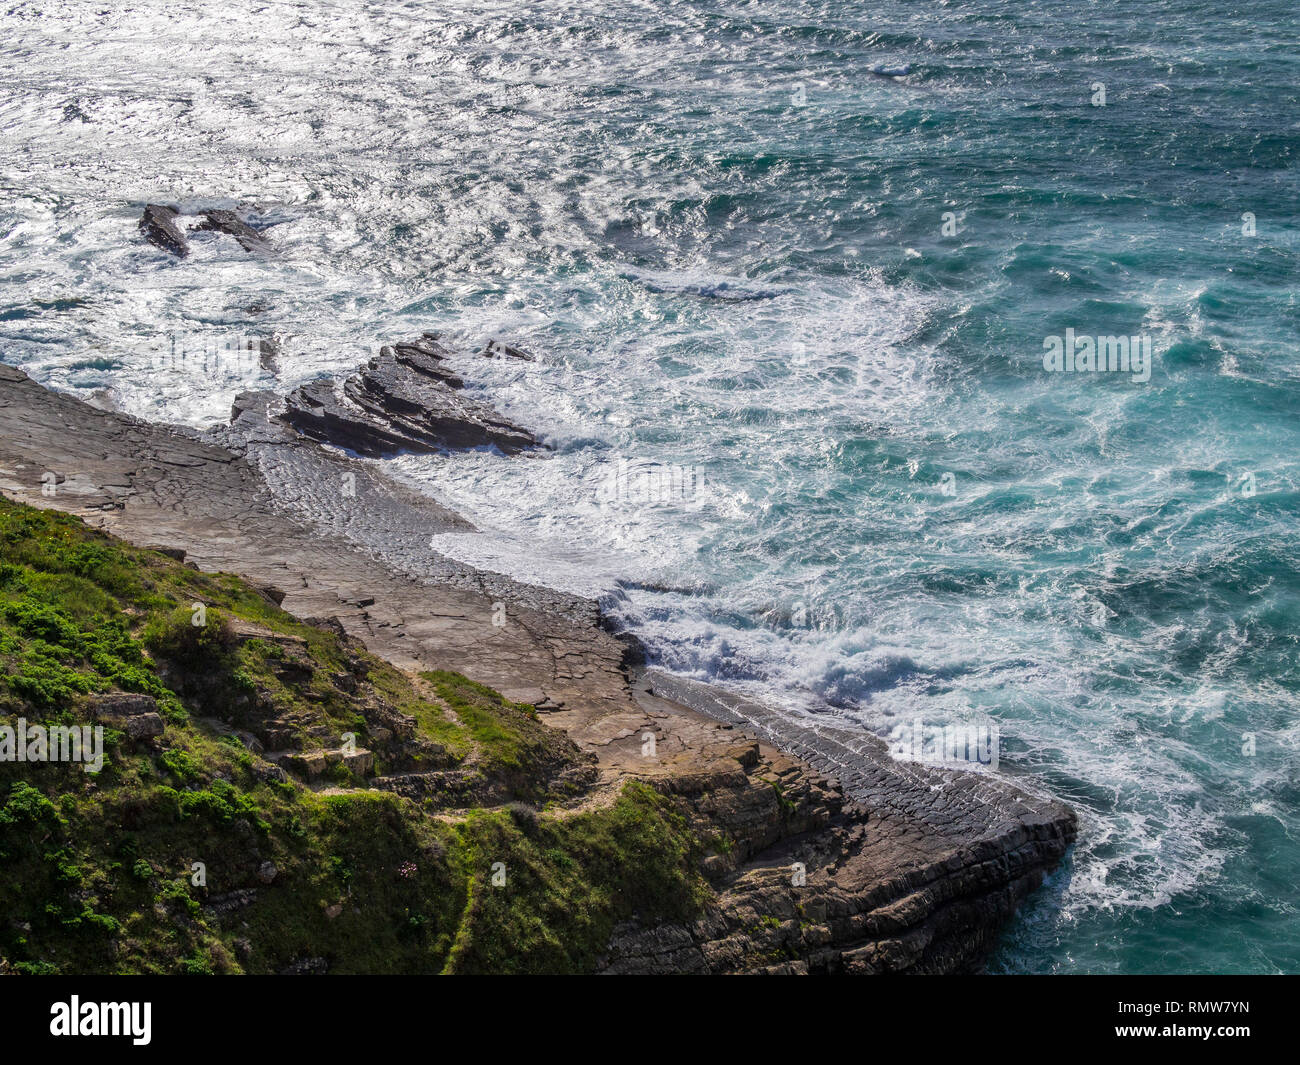 Rock ledges plunging onto the sea at Zambujeira do Mar, a village on the western coast of southern Portugal. - Stock Image